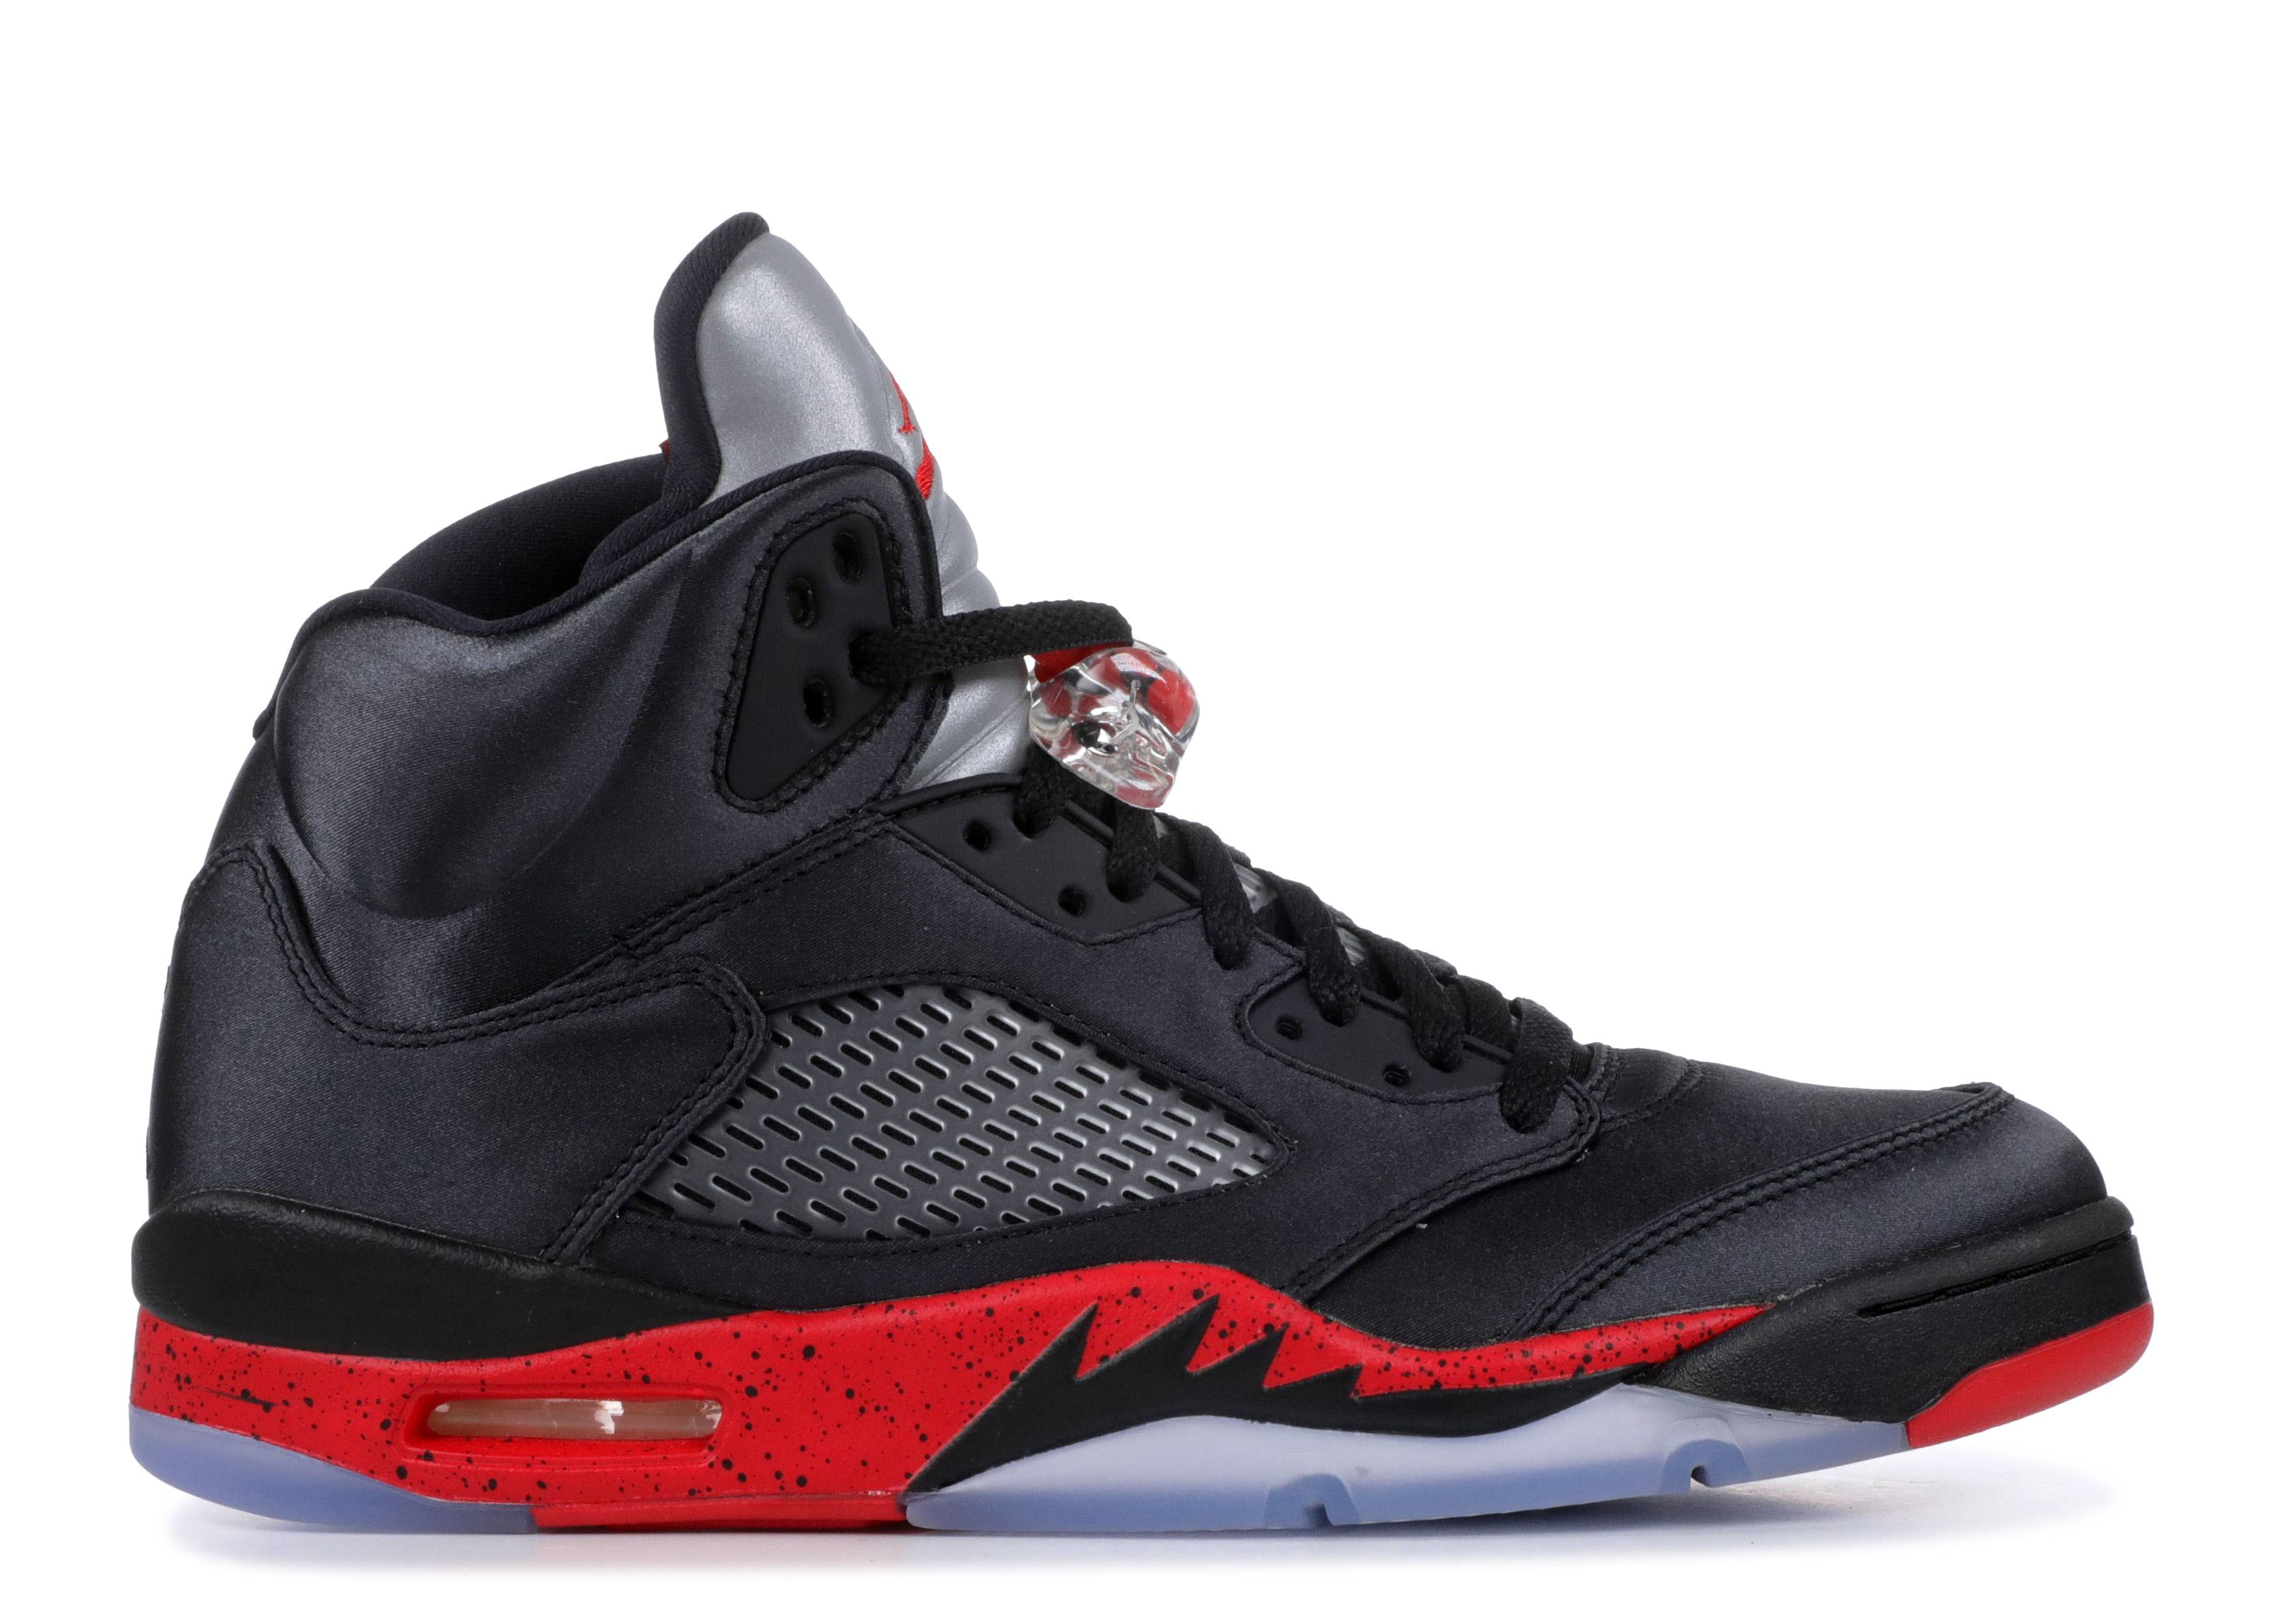 new product 2a6c1 e2048 Air Jordan 5 (V) - Nike | Flight Club